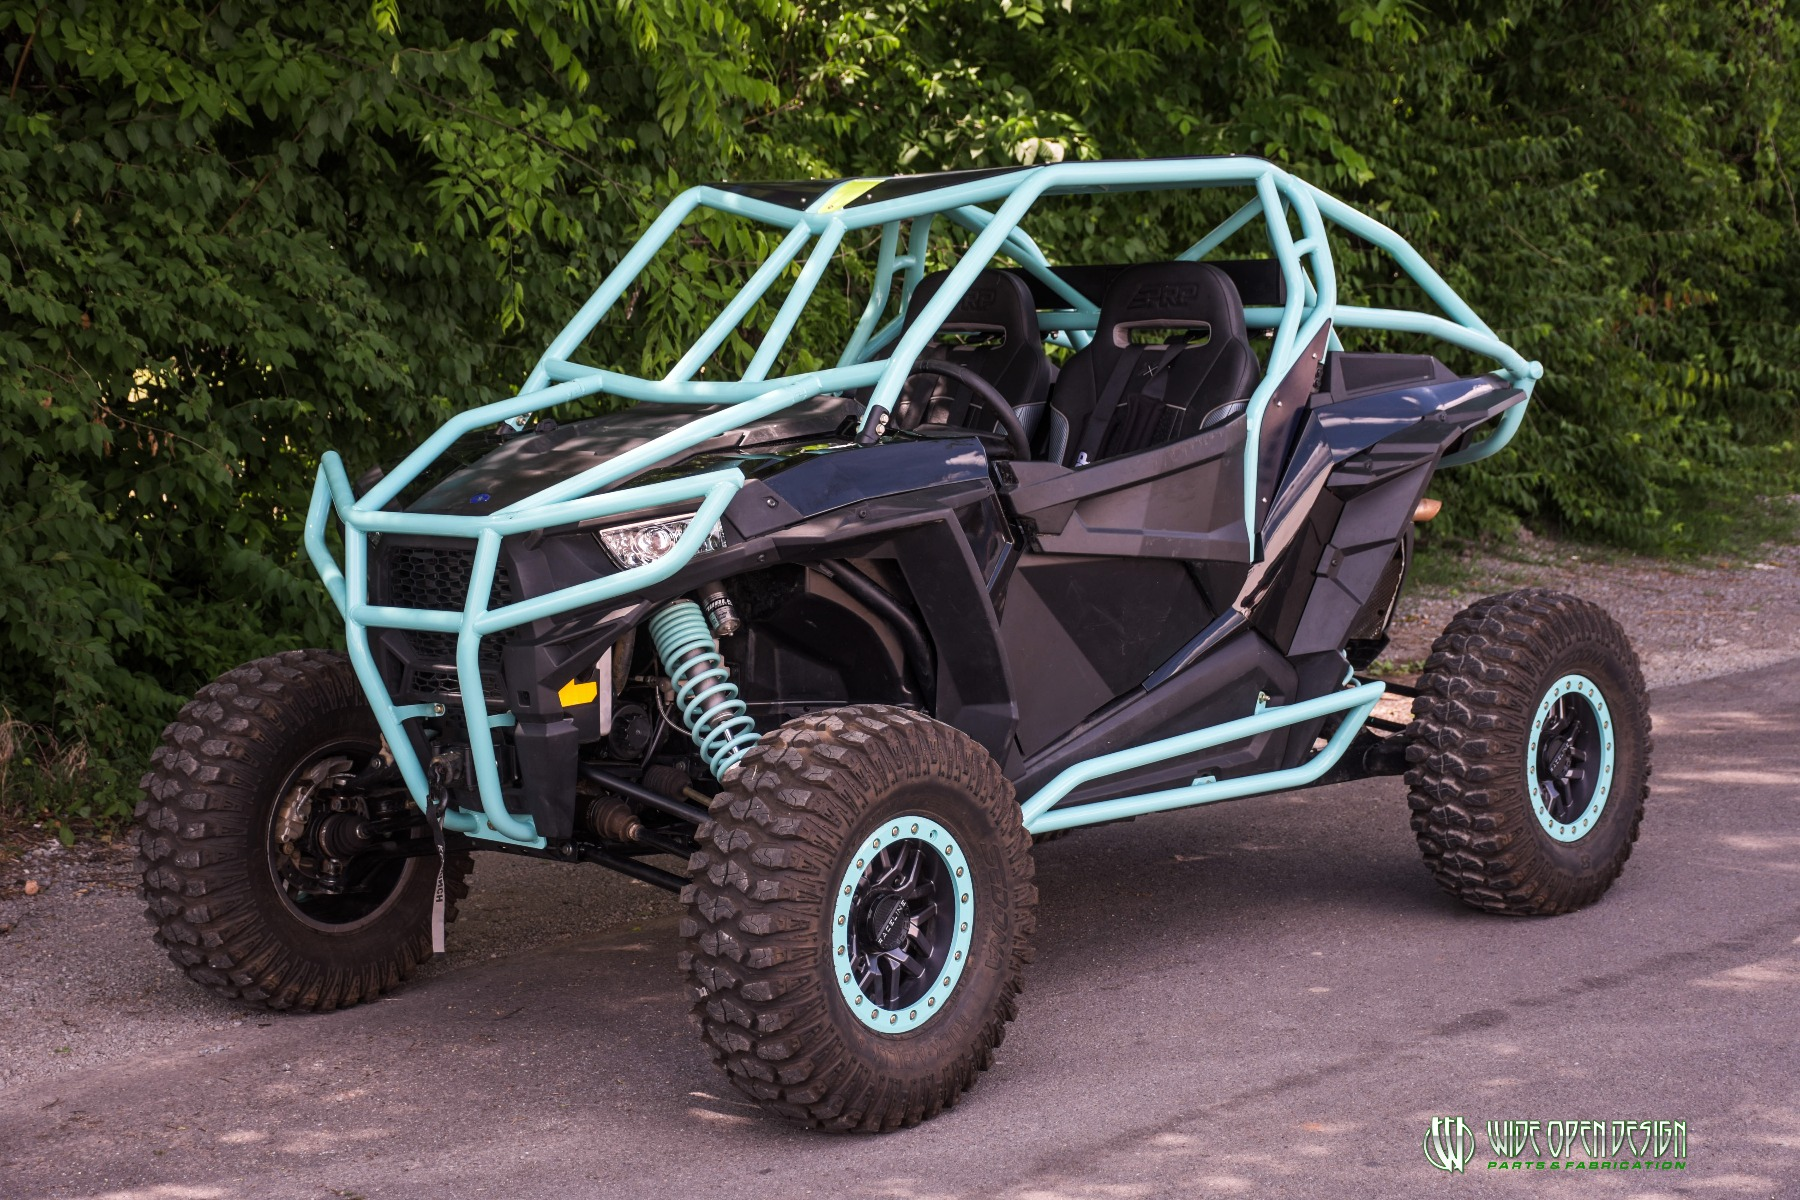 Wide Open Design UTV Cage RZR Cage Double Down featuring Double Pillars 15